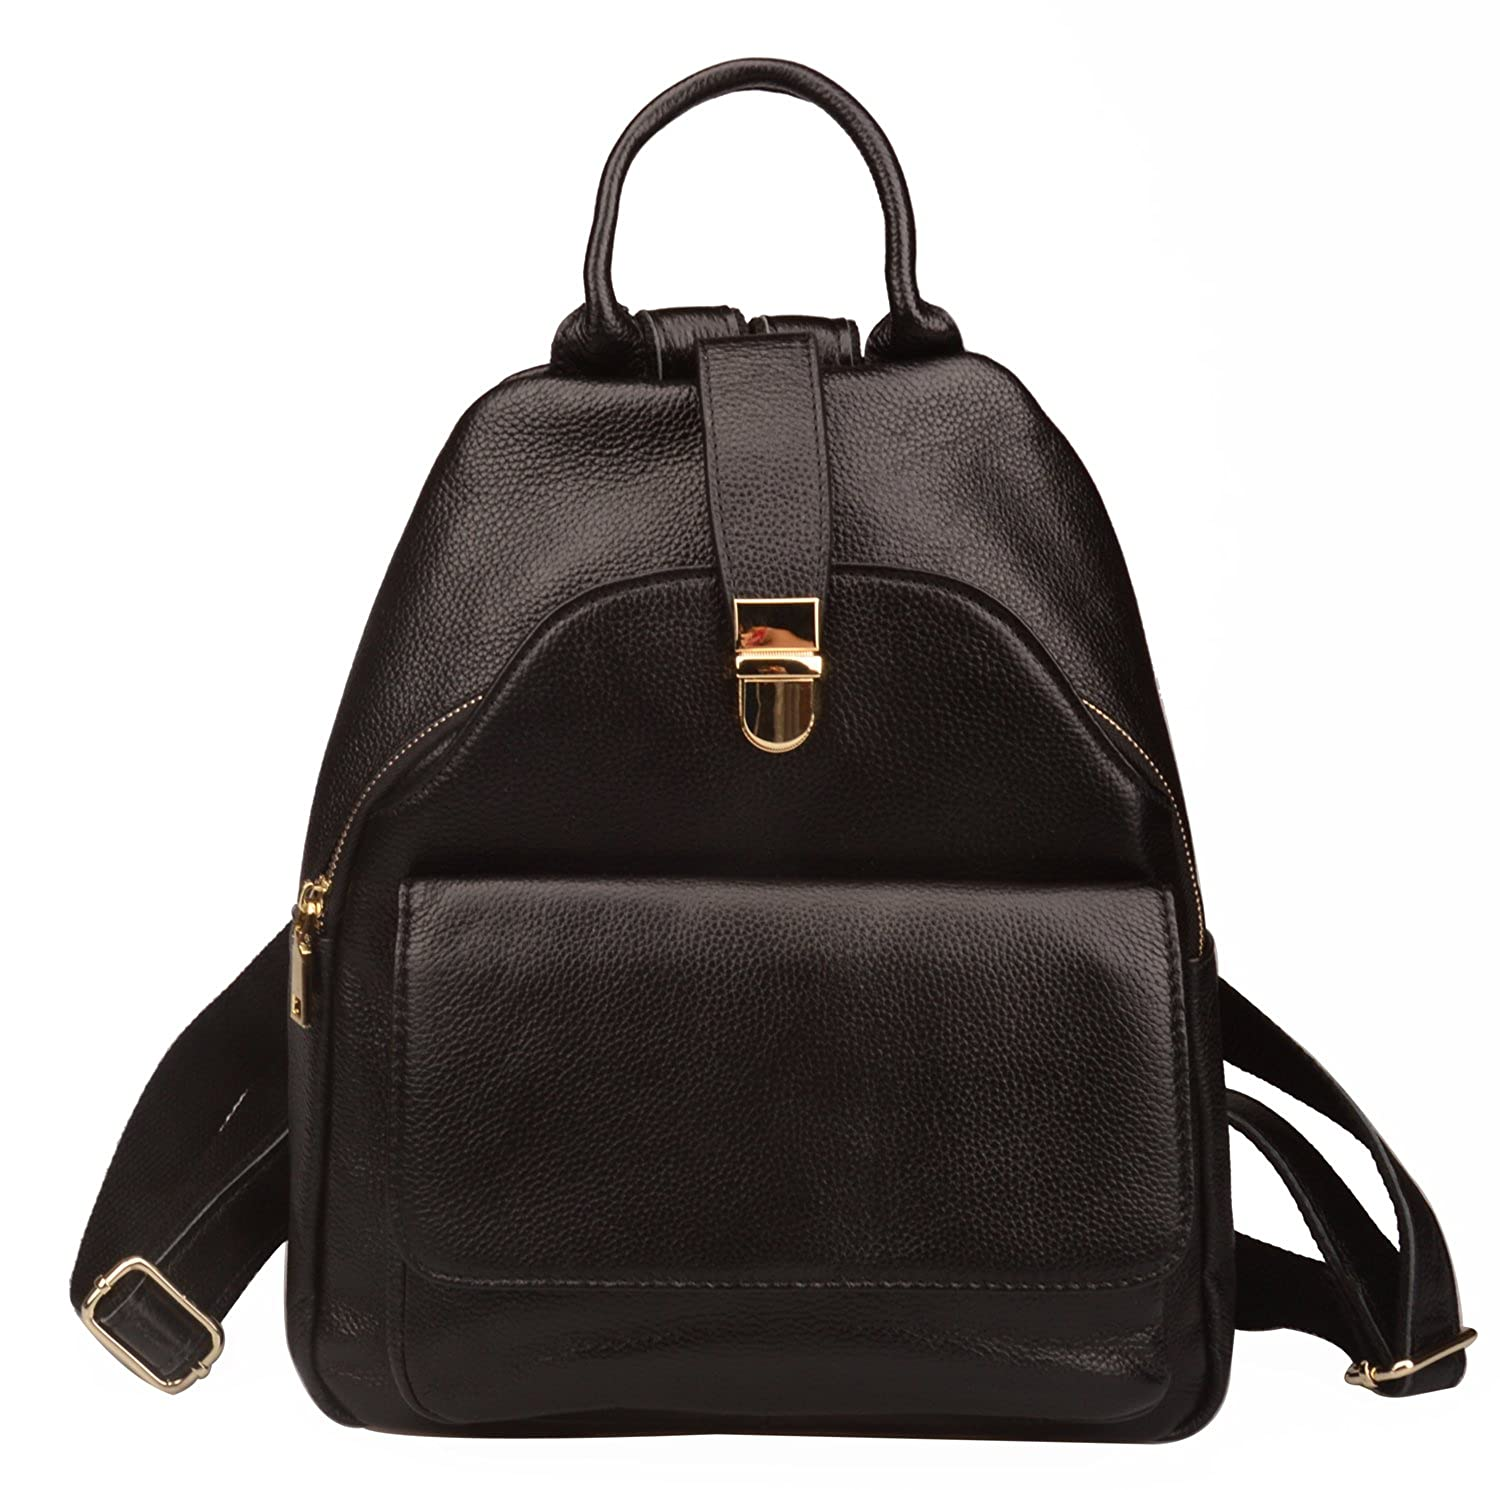 dcc3e76df587 Amazon.com  Fiswiss Women s Genuine Leather Everyday Backpack Handbags And  Purses (Black)  Shoes